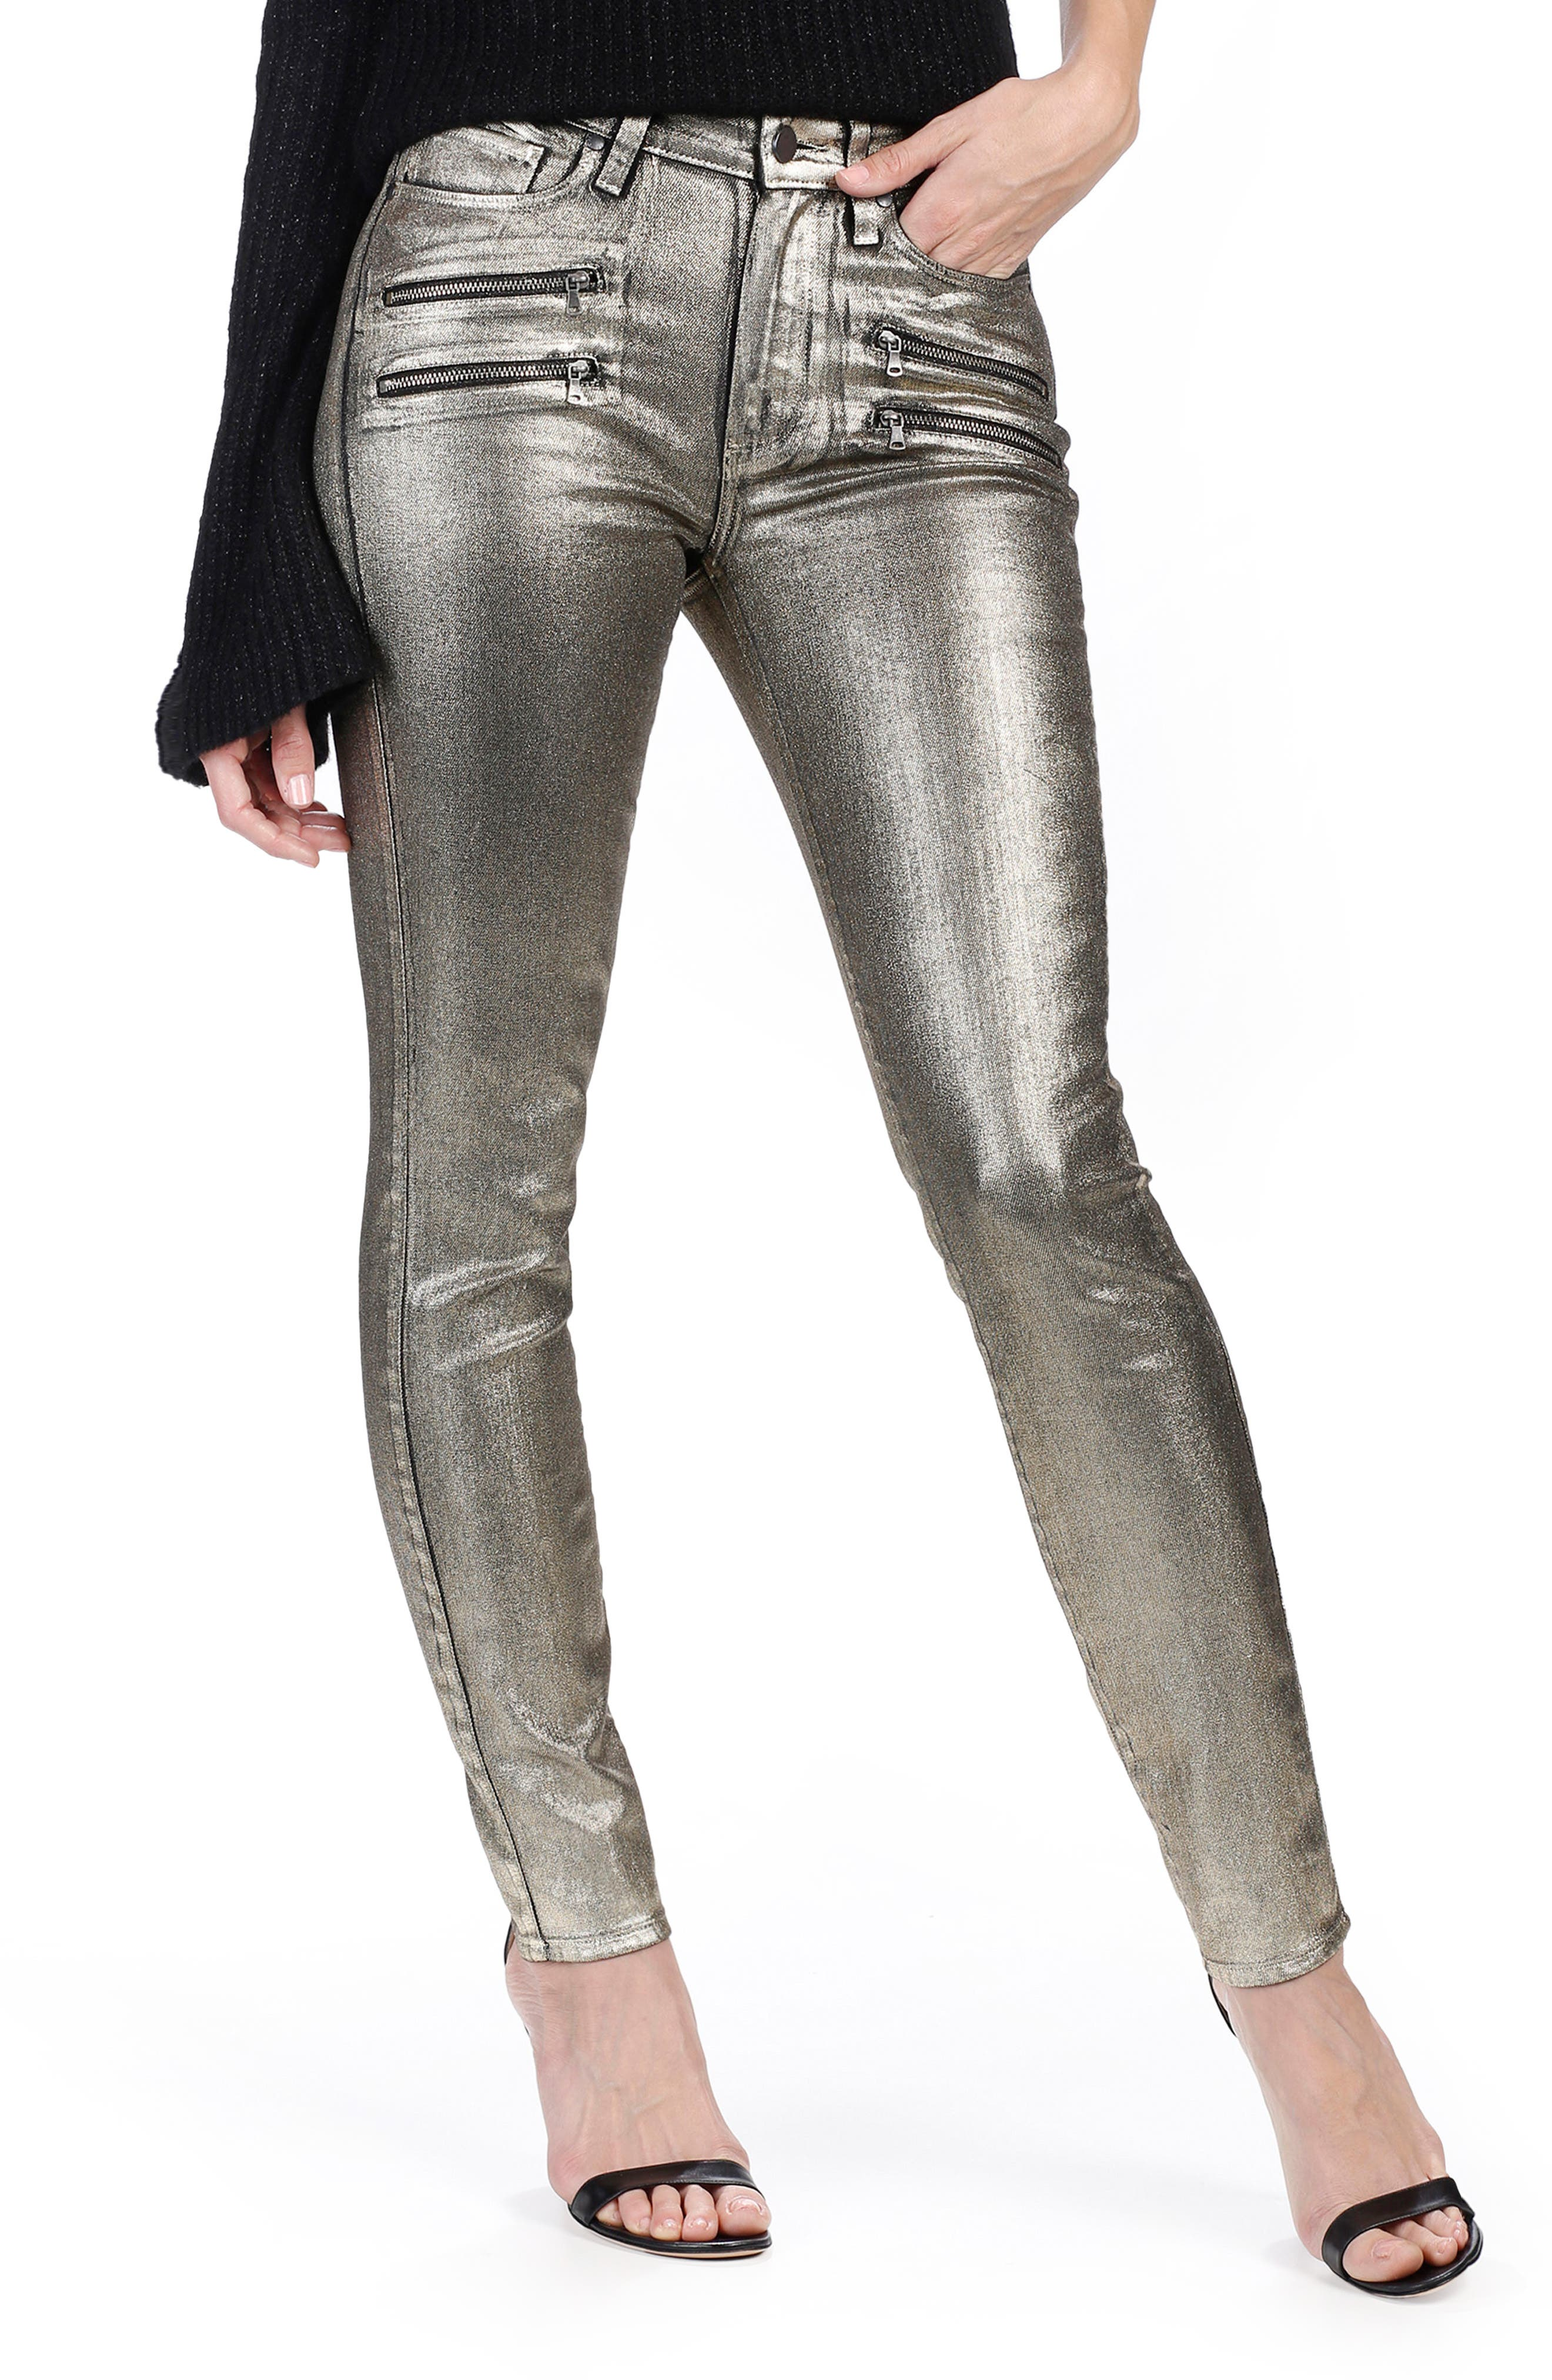 Alternate Image 1 Selected - Rosie HW x PAIGE Stevie High Waist Skinny Jeans (Gold Galaxy Coating)